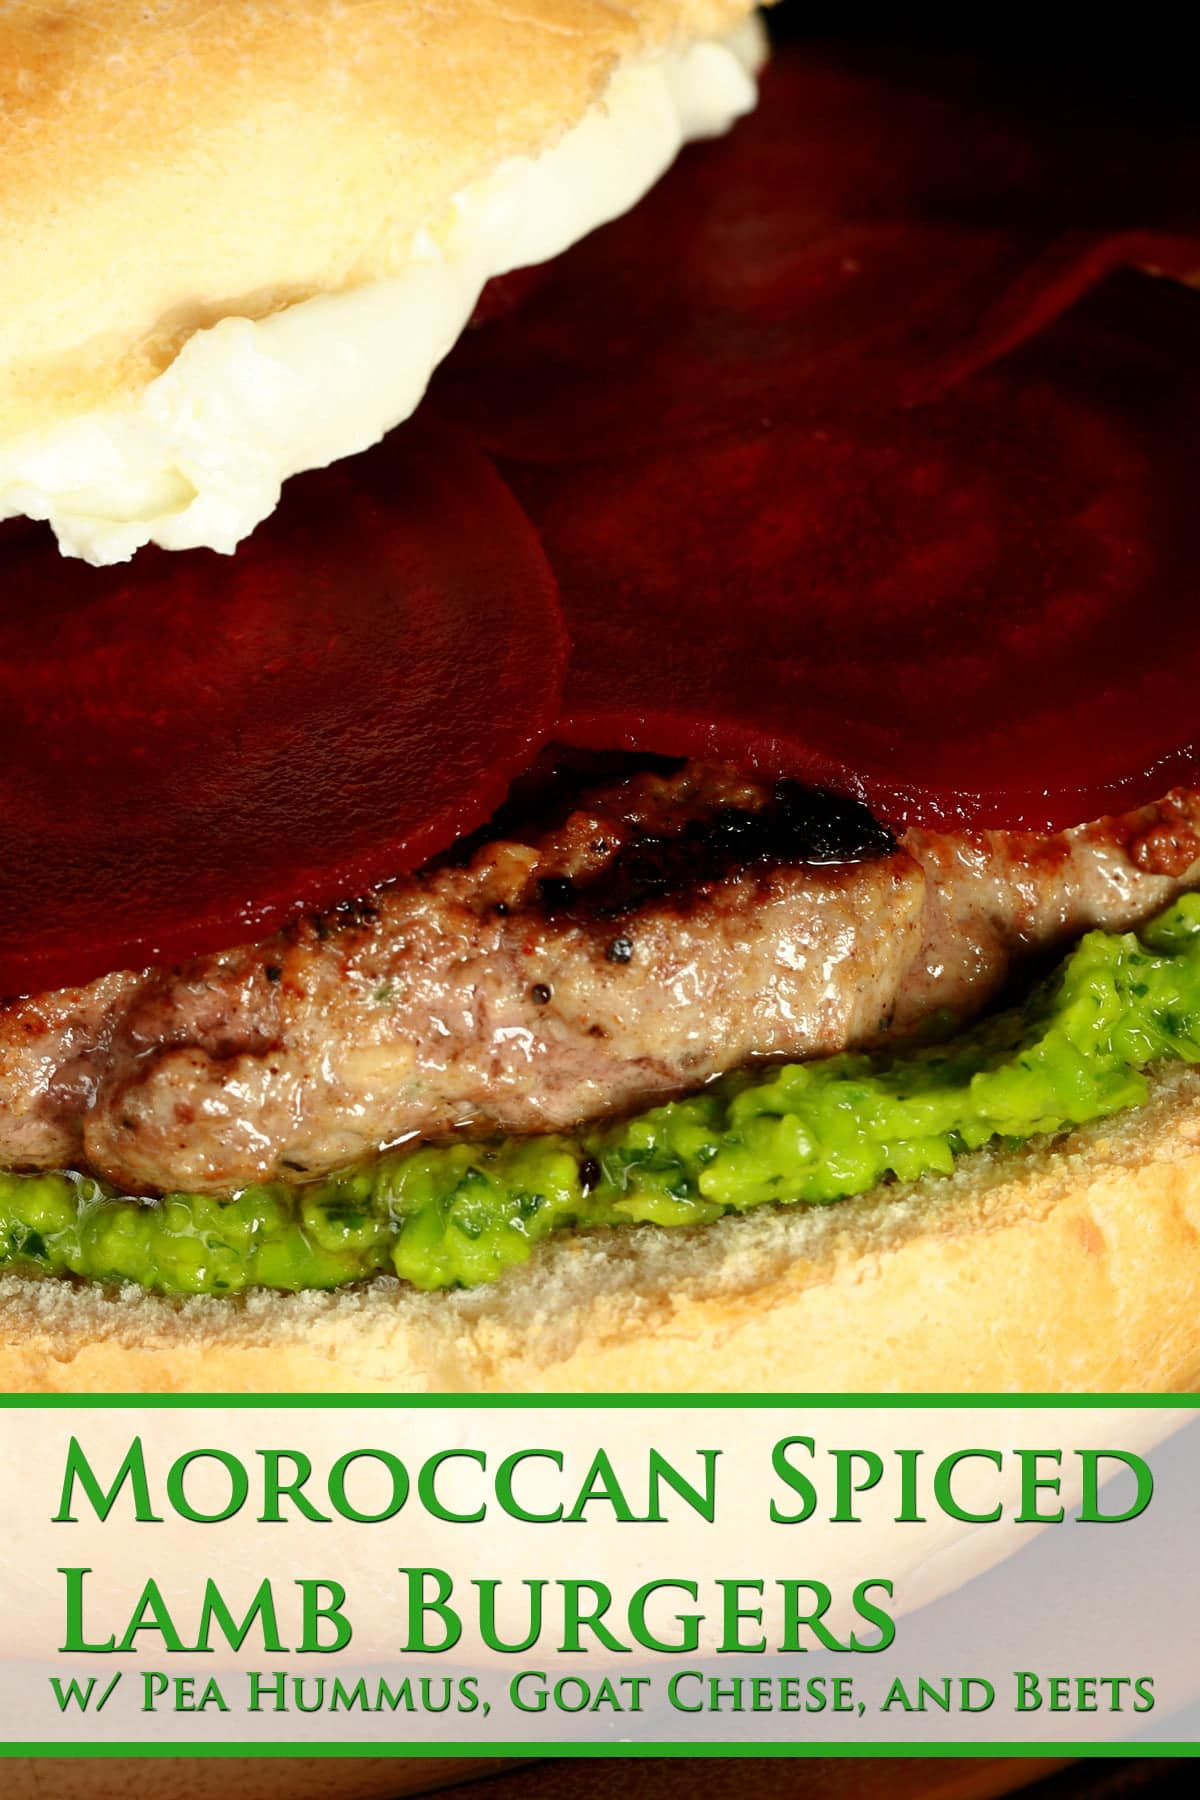 Close up view of a lamb burger with a green spread, a goat cheese spread, and beet slices on it.